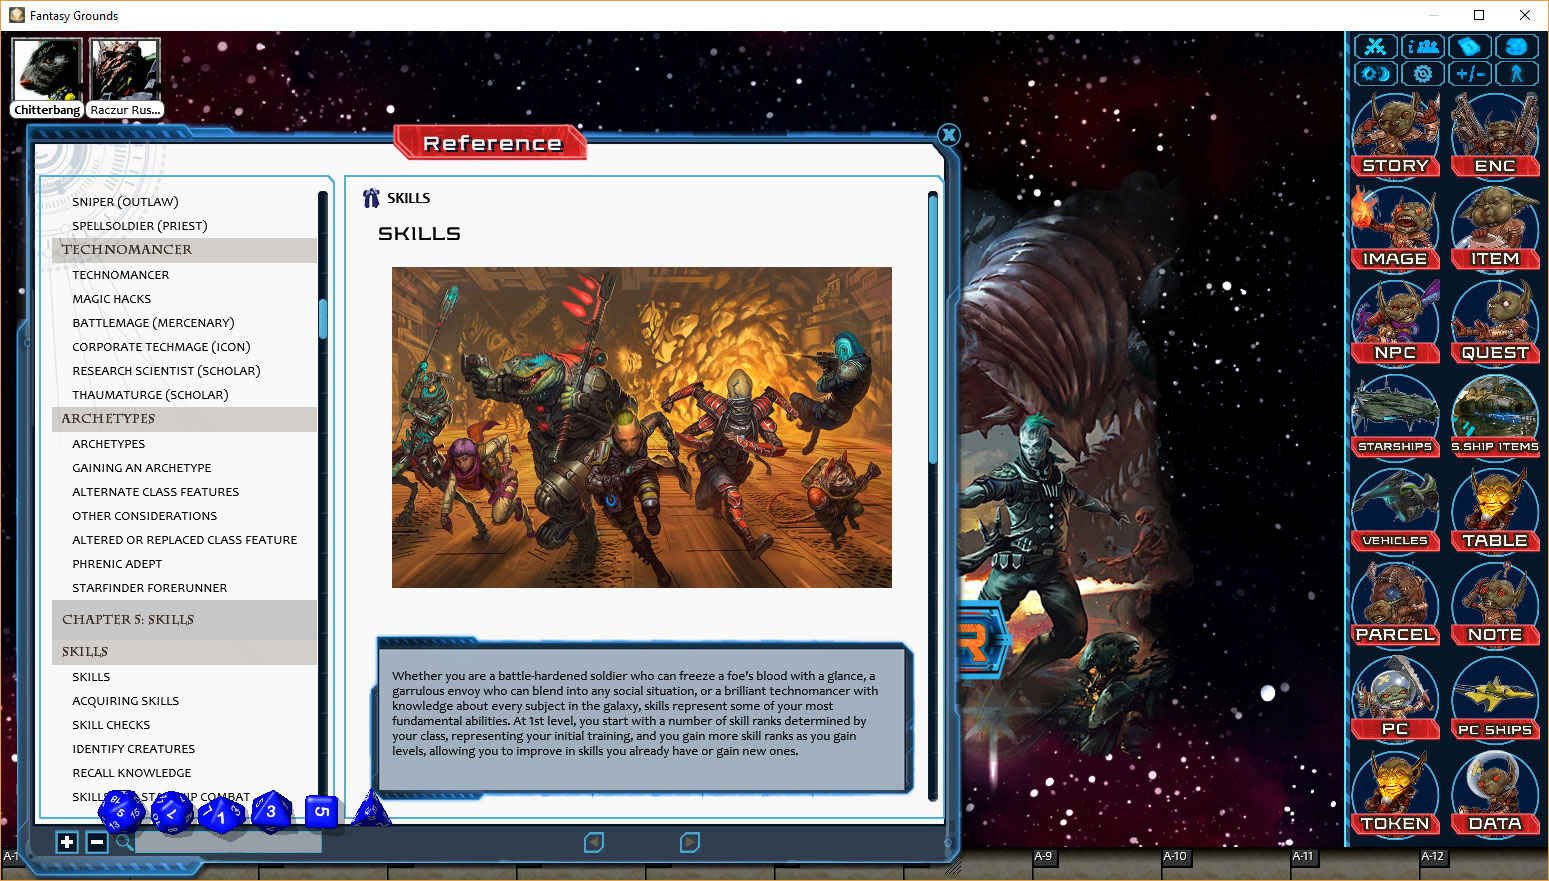 Want Starfinder on Fantasy Grounds? Now's the Time!